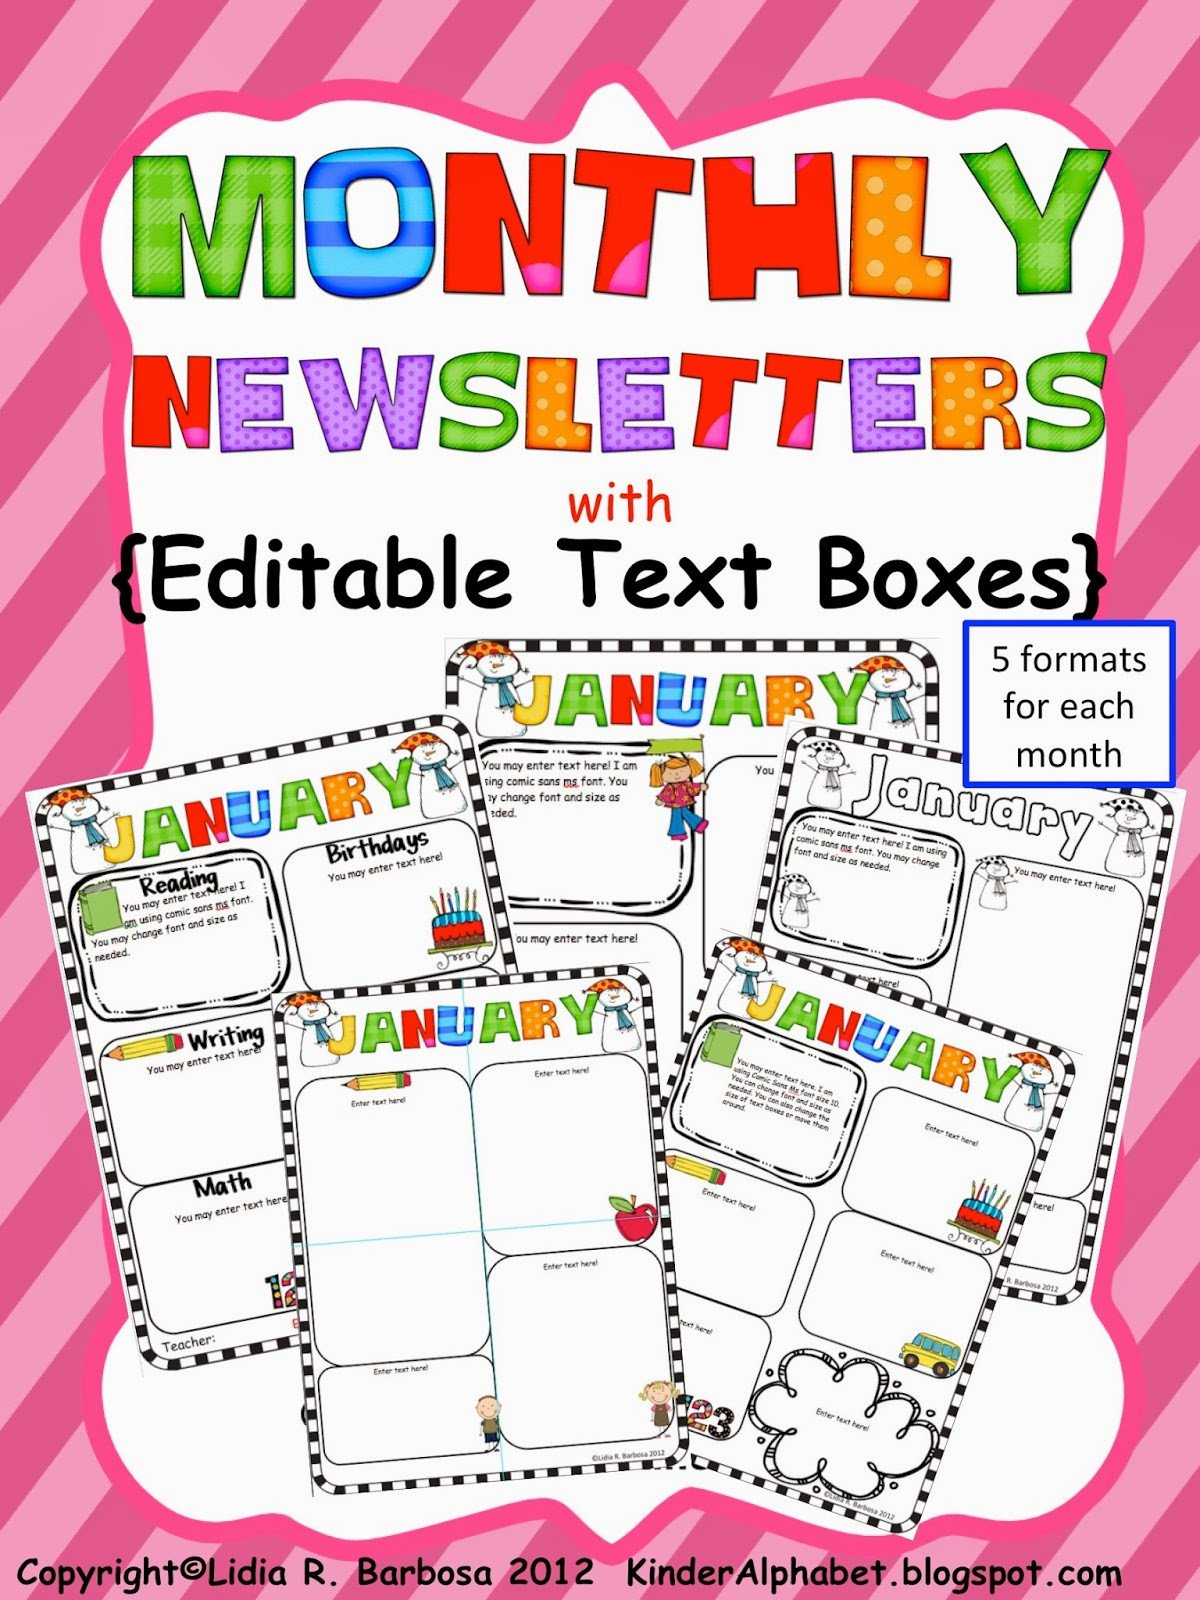 Free Editable Newsletter Templates Kinder Alphabet — Teacher Resources In English and Spanish